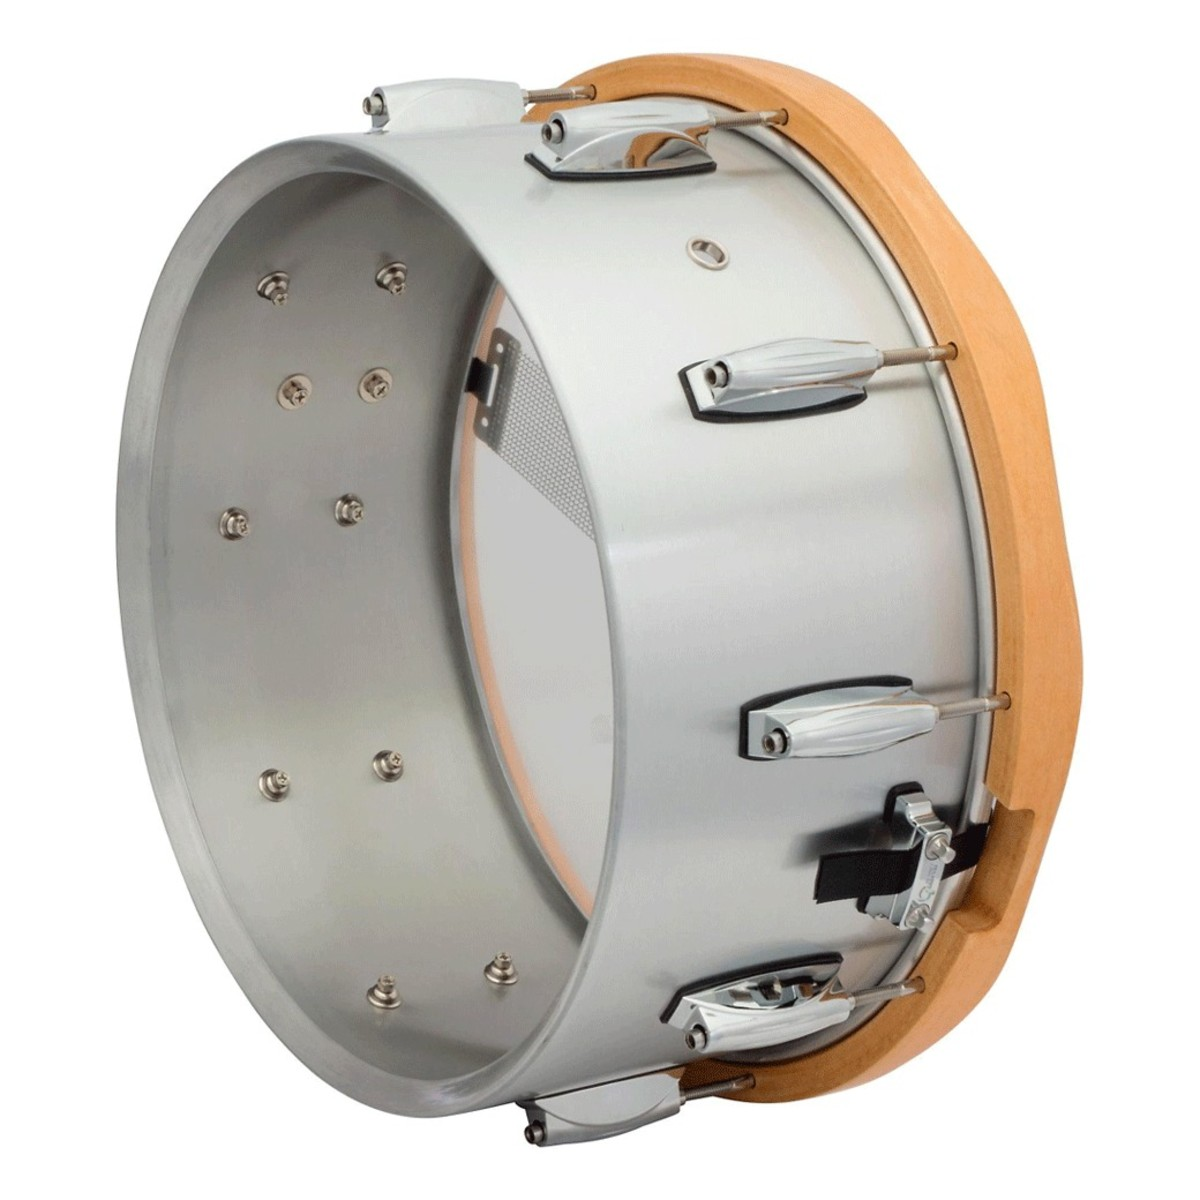 gretsch 14 x 6 5 aluminium gold series snare drum with wood hoops at gear4music. Black Bedroom Furniture Sets. Home Design Ideas